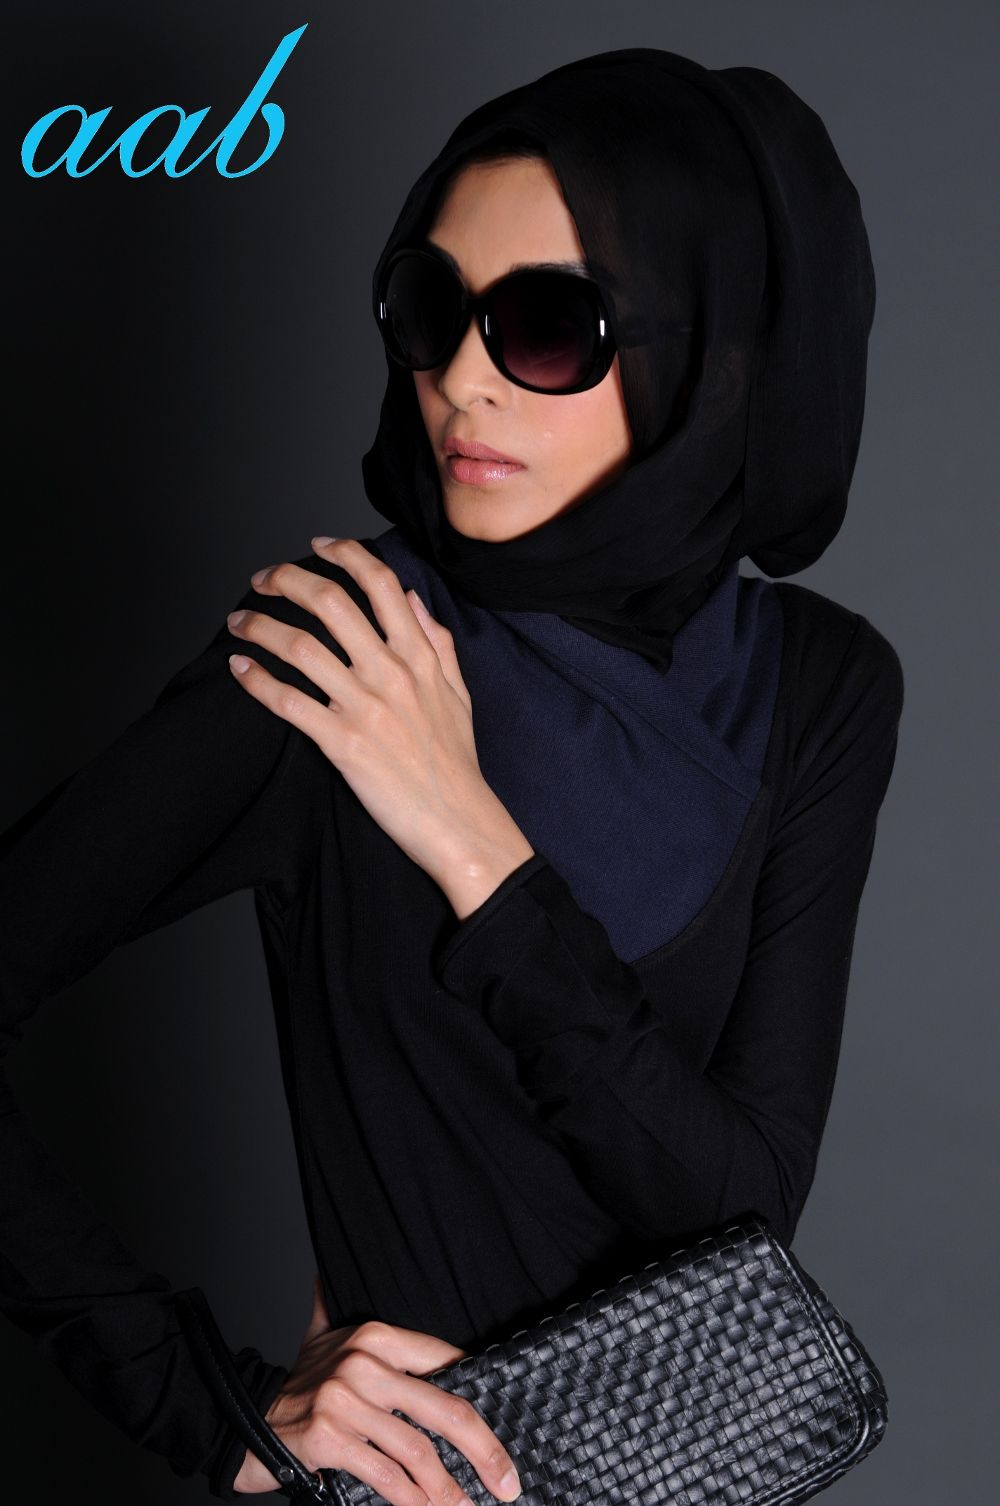 BLACK NAVY ABAYA  If your going for silhouette this season then pick Black Navy, stylish high neck wrap over in navy blue and main body in black jersey which simply drapes beautifully down. It's a no nonsense item that simply oozes style.  http://www.aabcollection.com/shop/product/black-navy-abaya/131